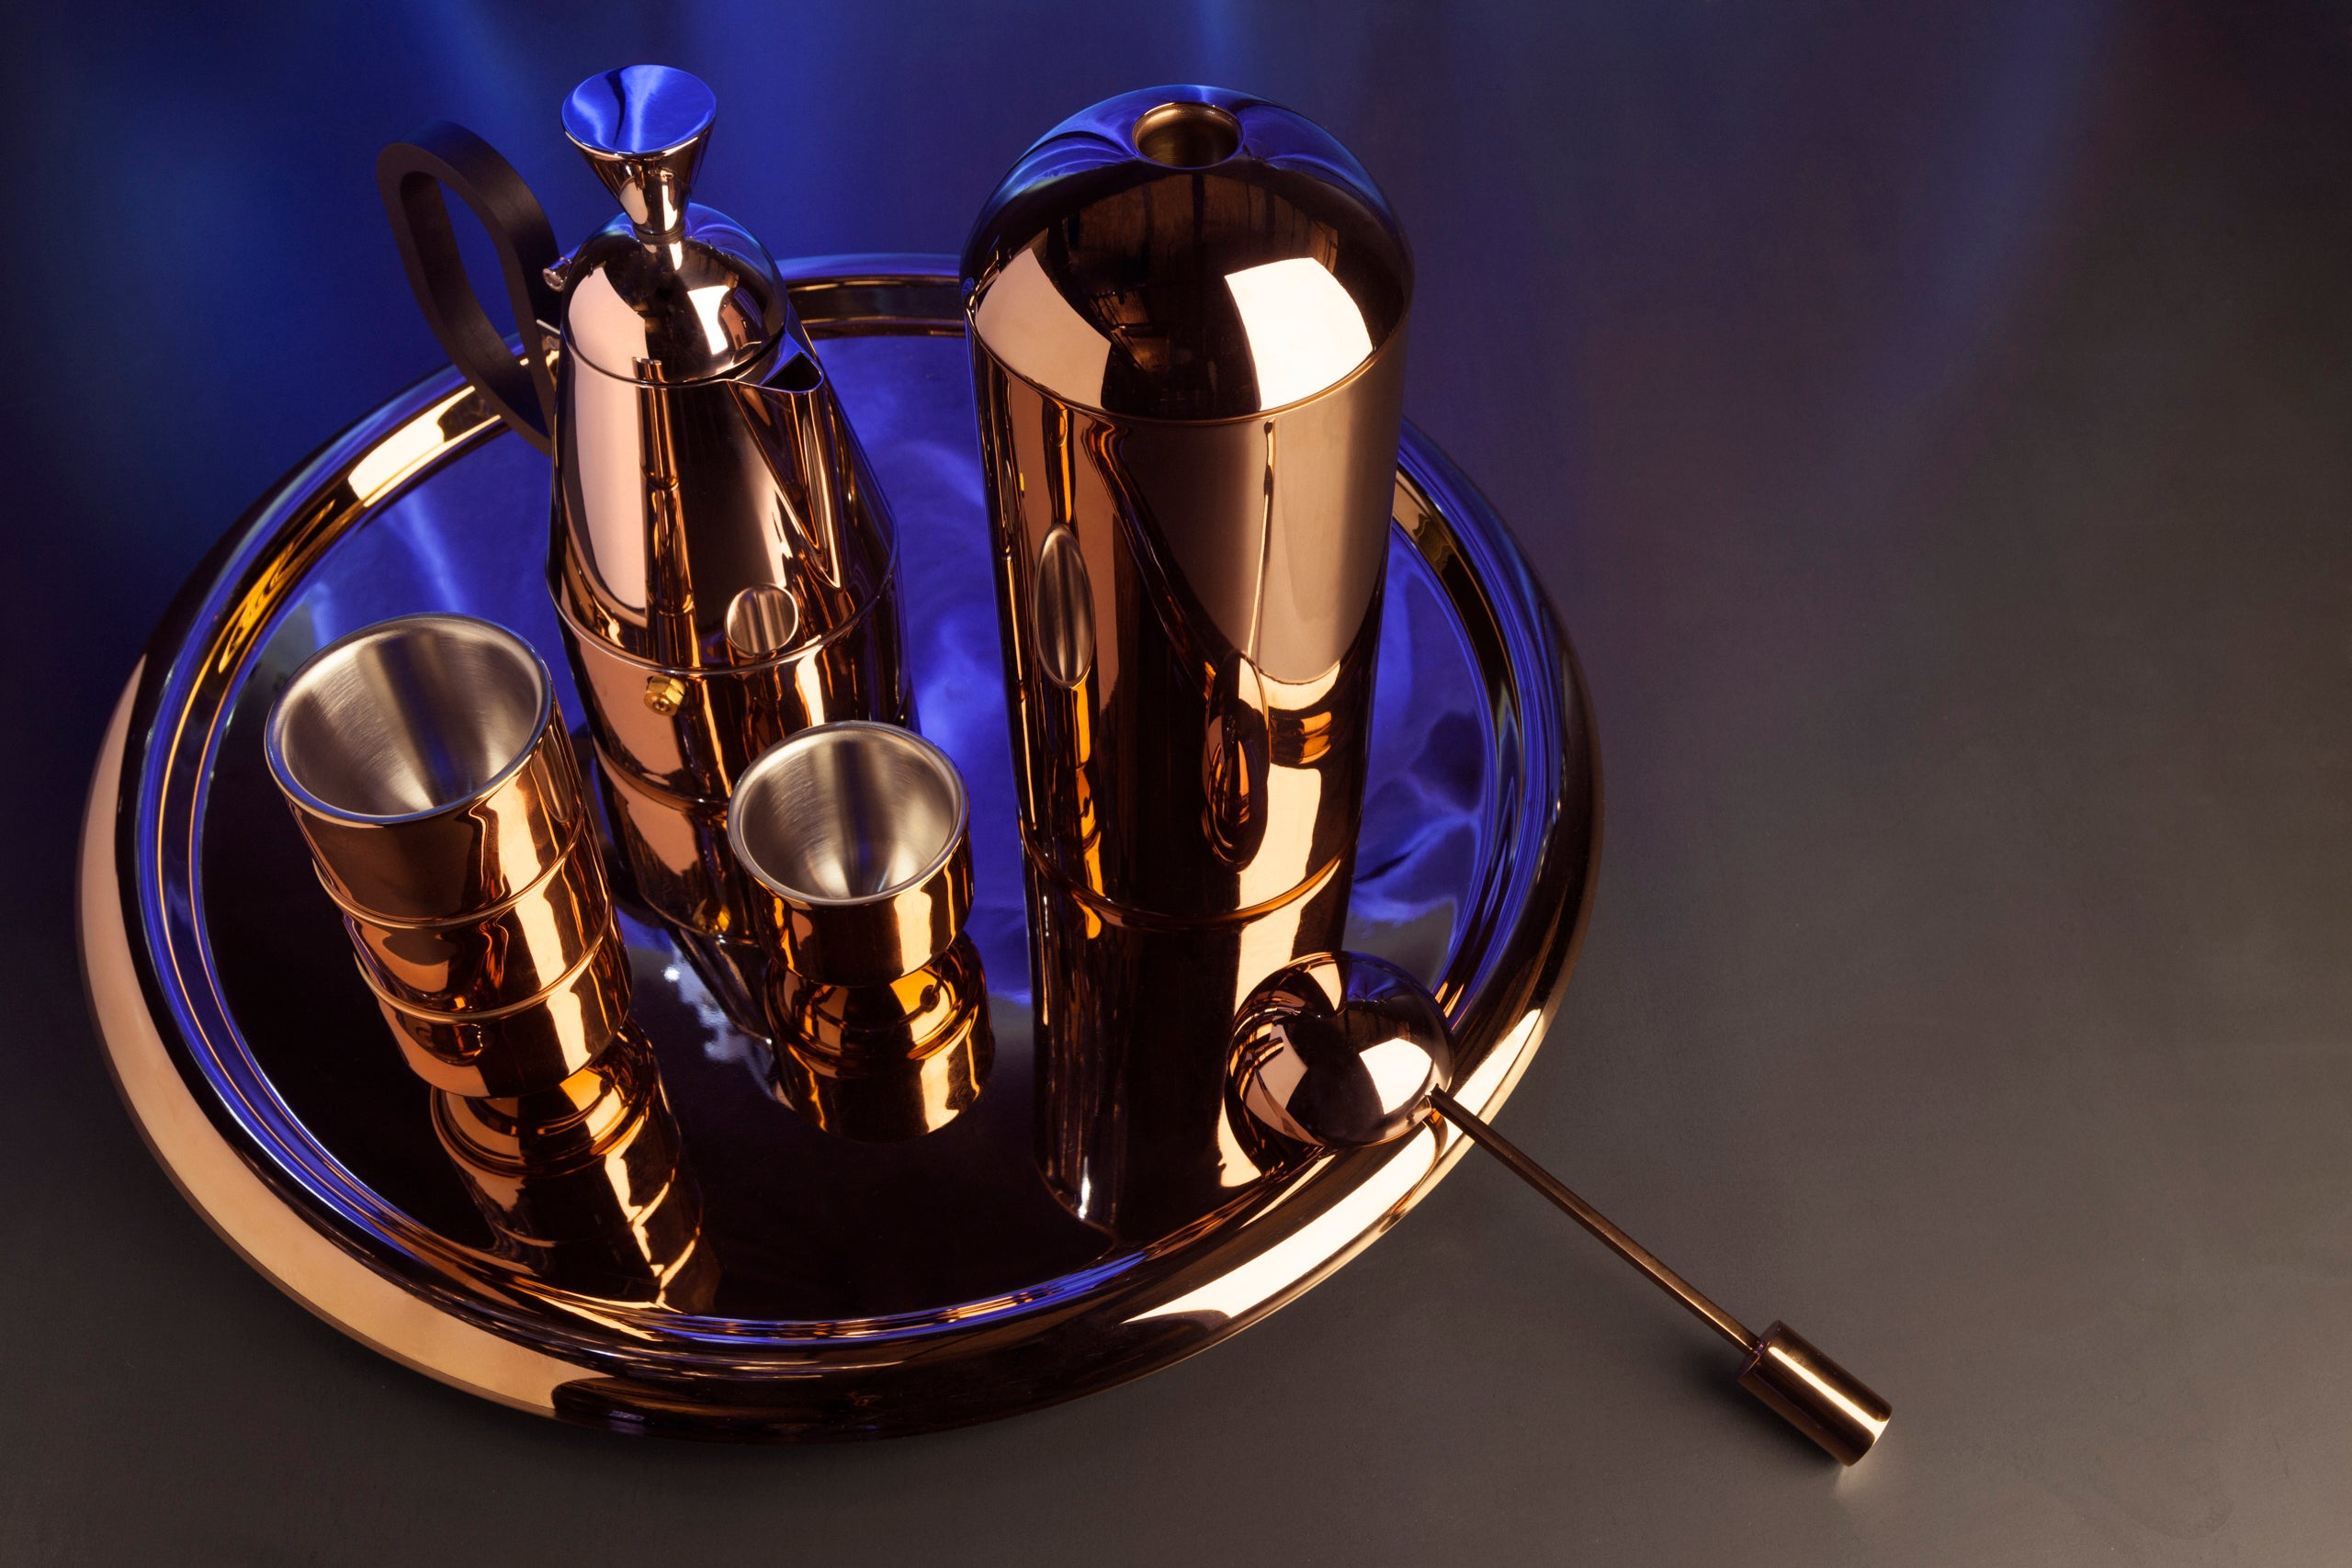 Brew Copper Coffee Collection from Tom Dixon